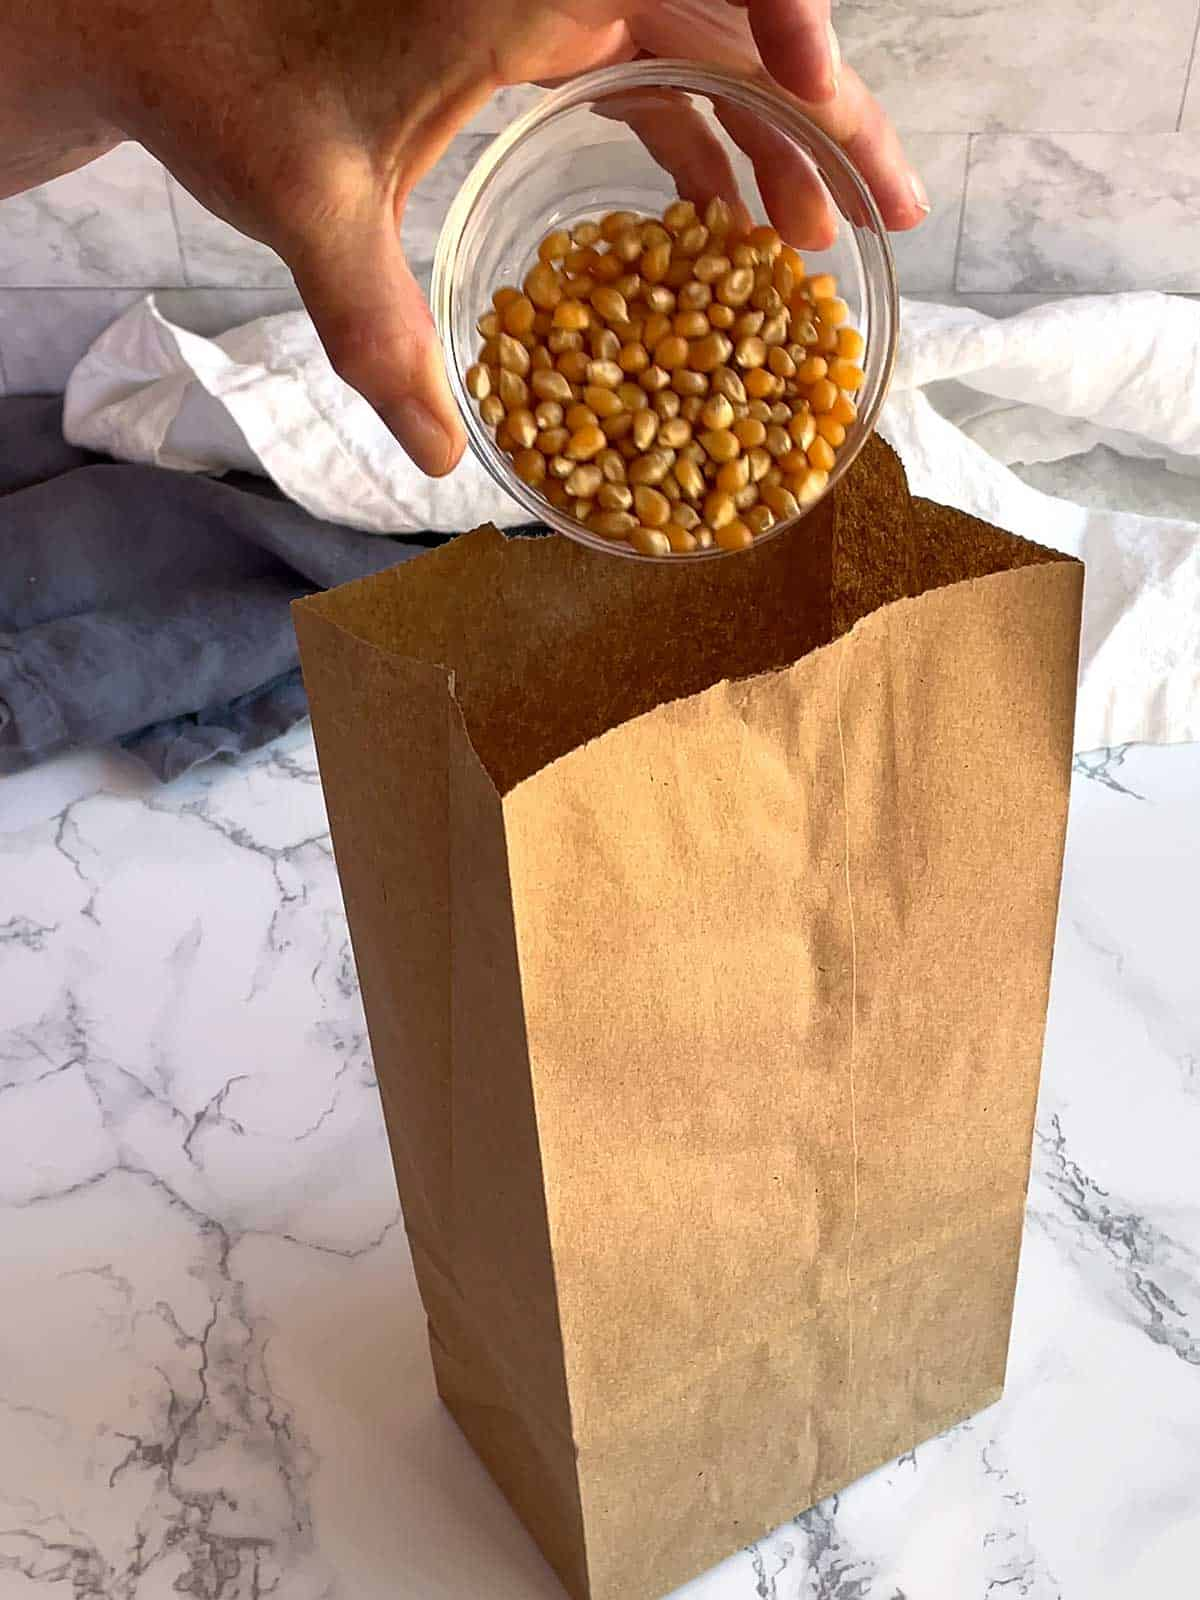 Adding popcorn to the brown paper bag.